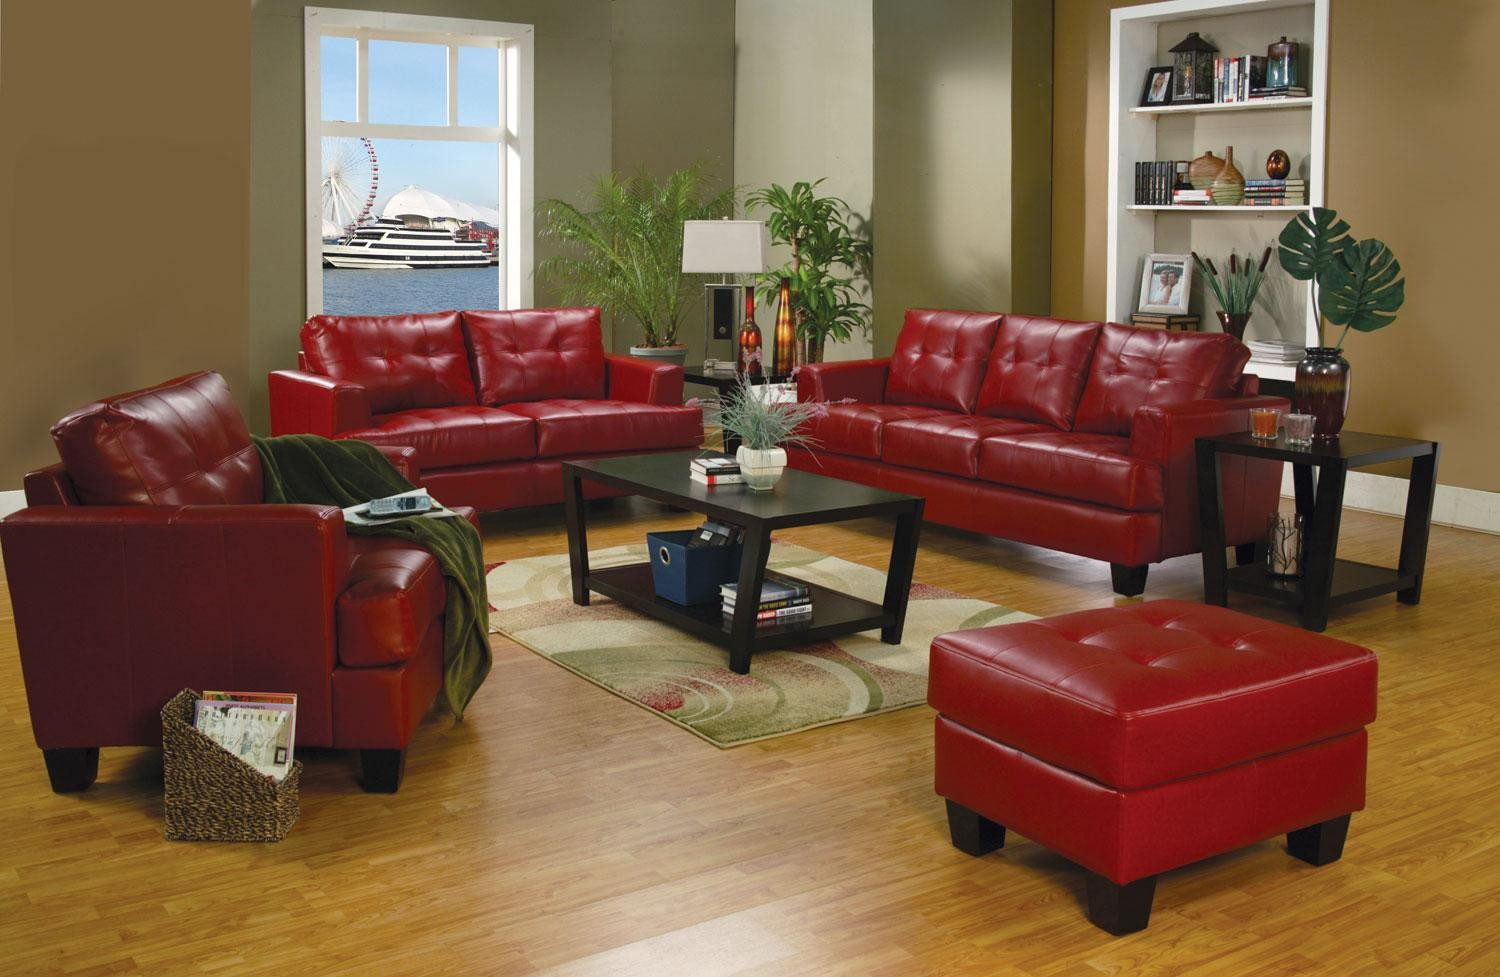 samuel red leather living room set 501831 from coaster 501831 coleman furniture